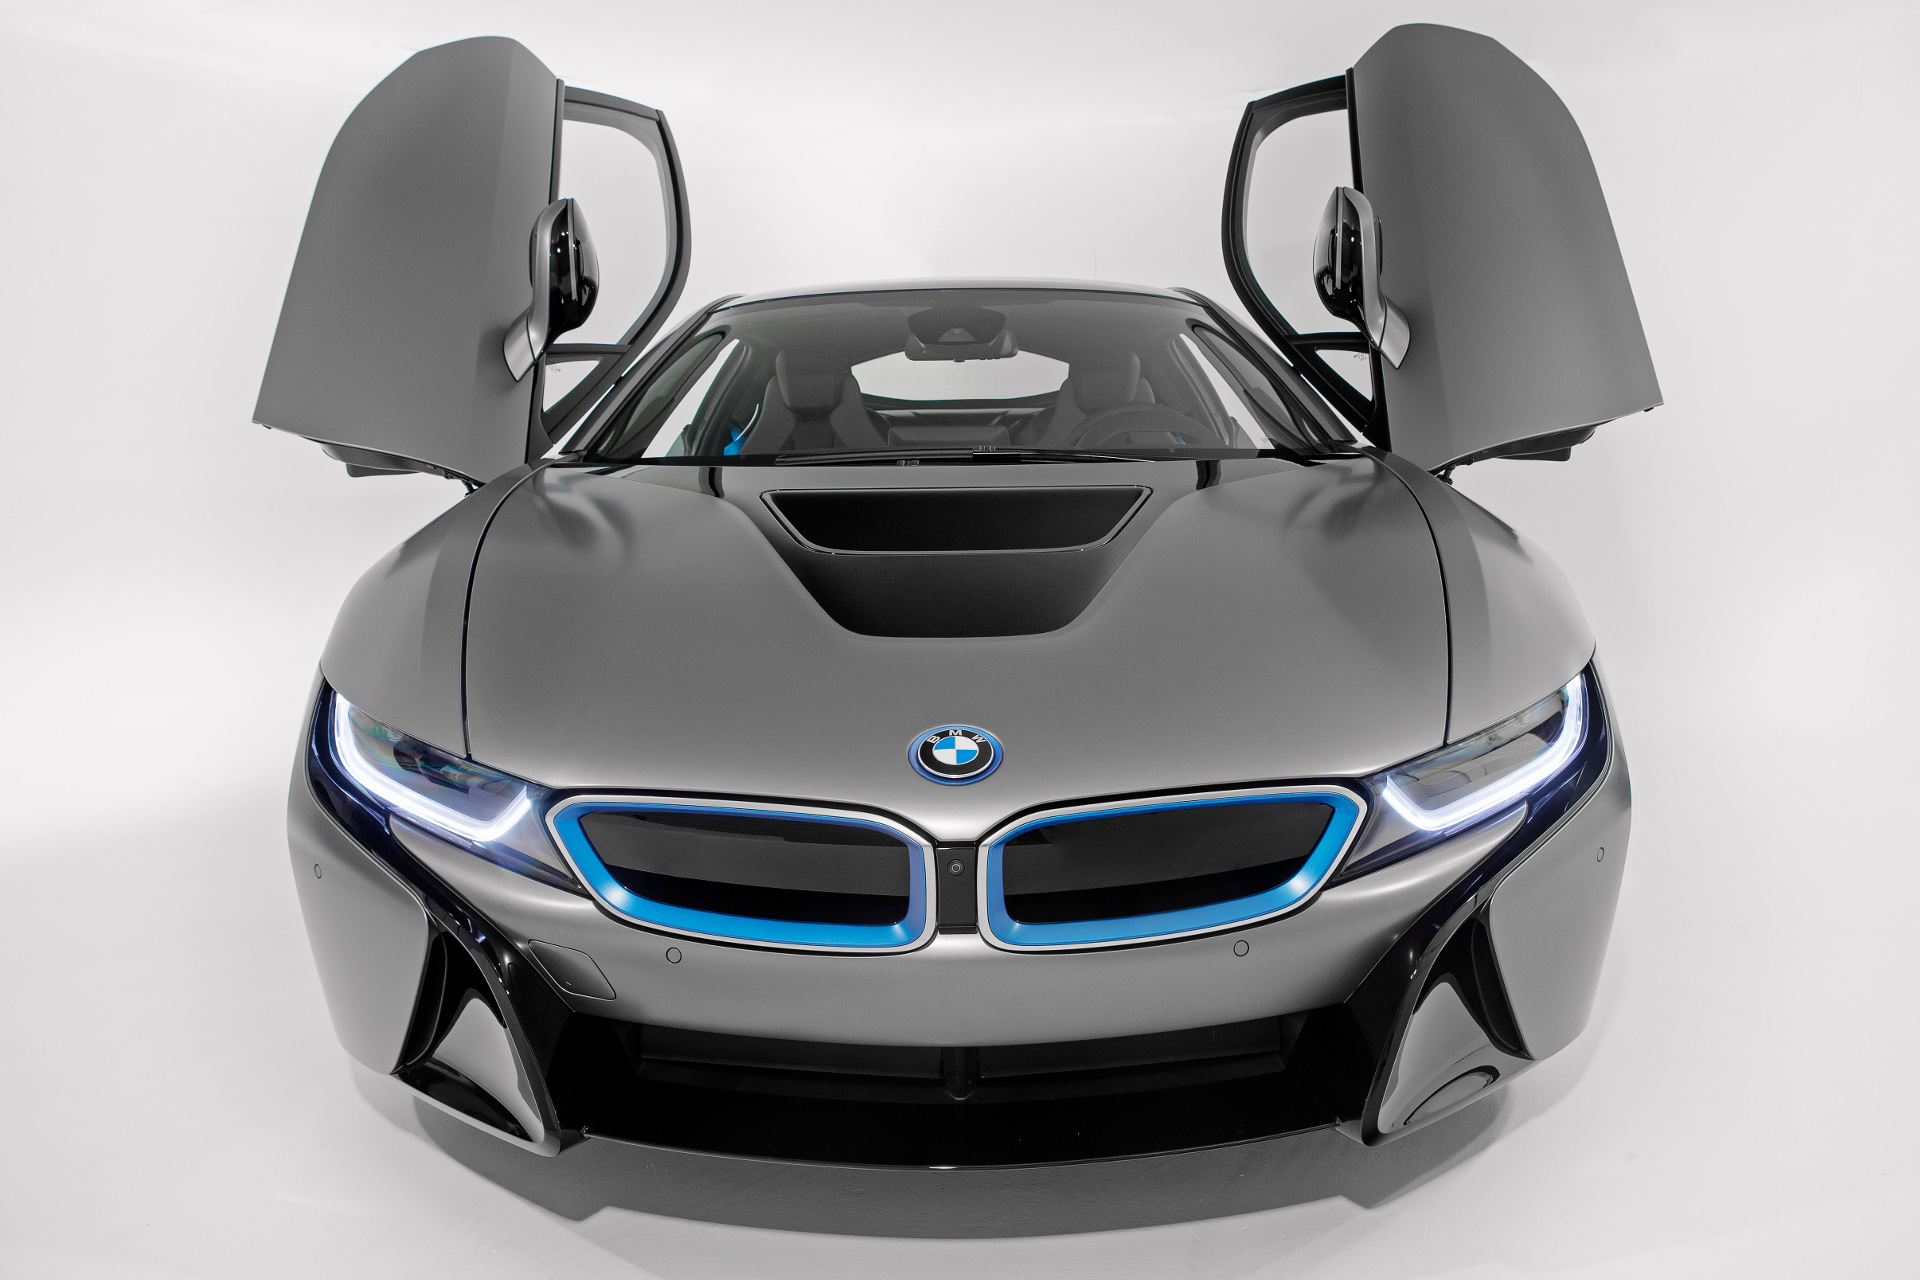 2014 Bmw I8 Concours D 180 Elegance Edition In Frozen Grey